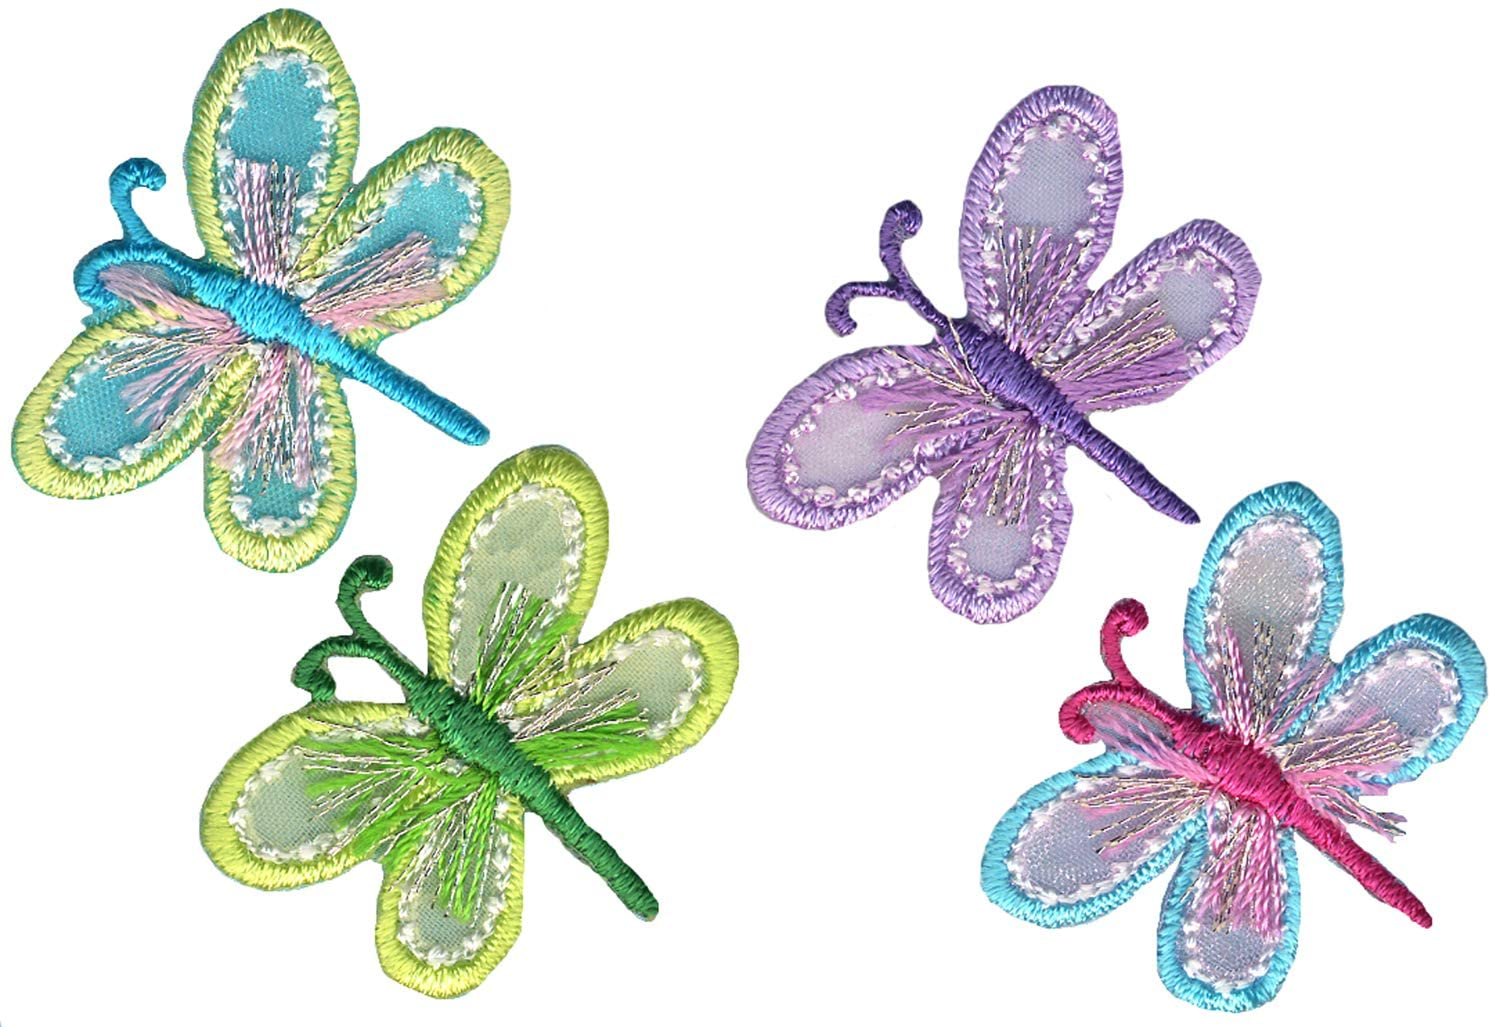 Simplicity Multicolor Dragonfly Applique Clothing Iron On Patches, 4pc, 1.25'' x 1.1